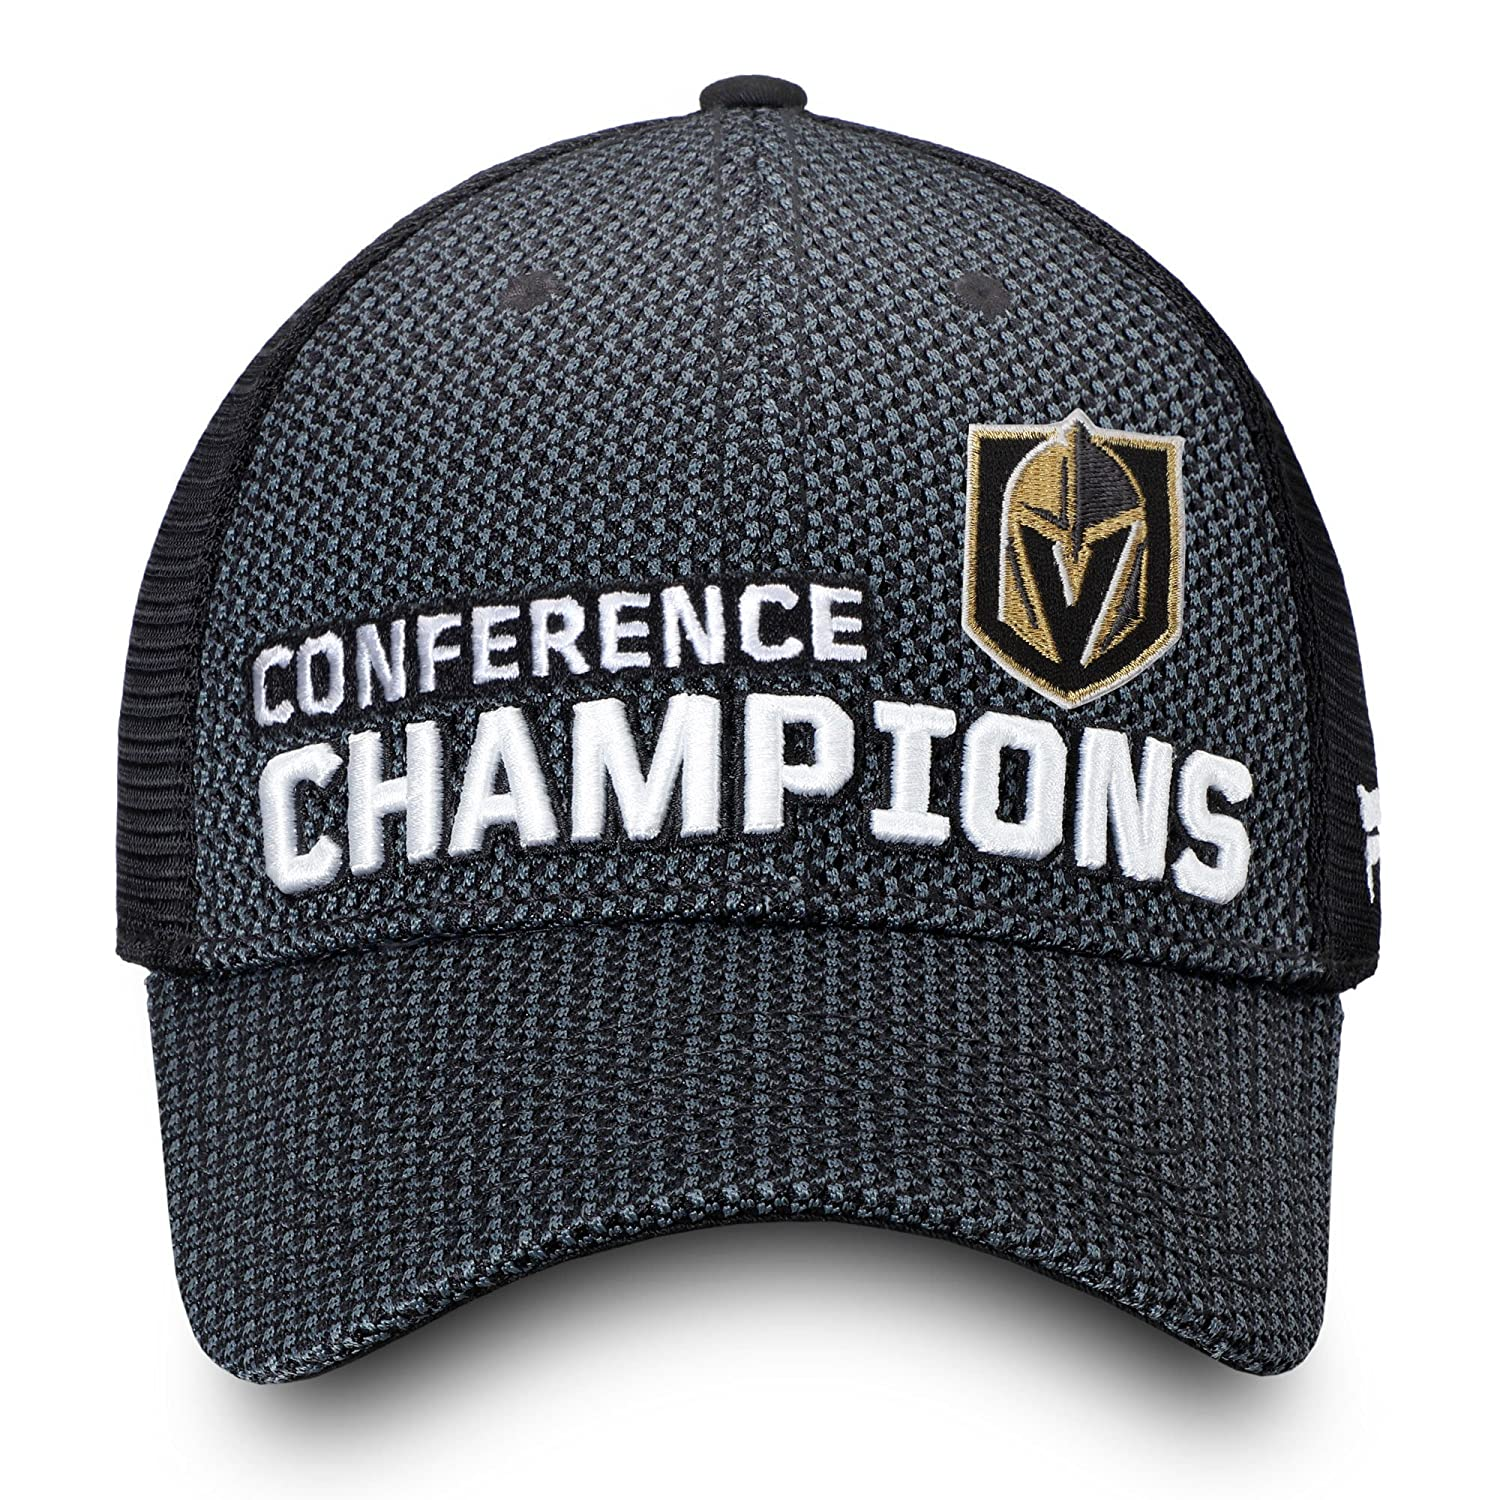 61256f2aa10 Amazon.com   Official Vegas Golden Knights 2018 Western Conference  Champions Locker Room Trucker Adjustable Hat - Heather Charcoal   Sports    Outdoors